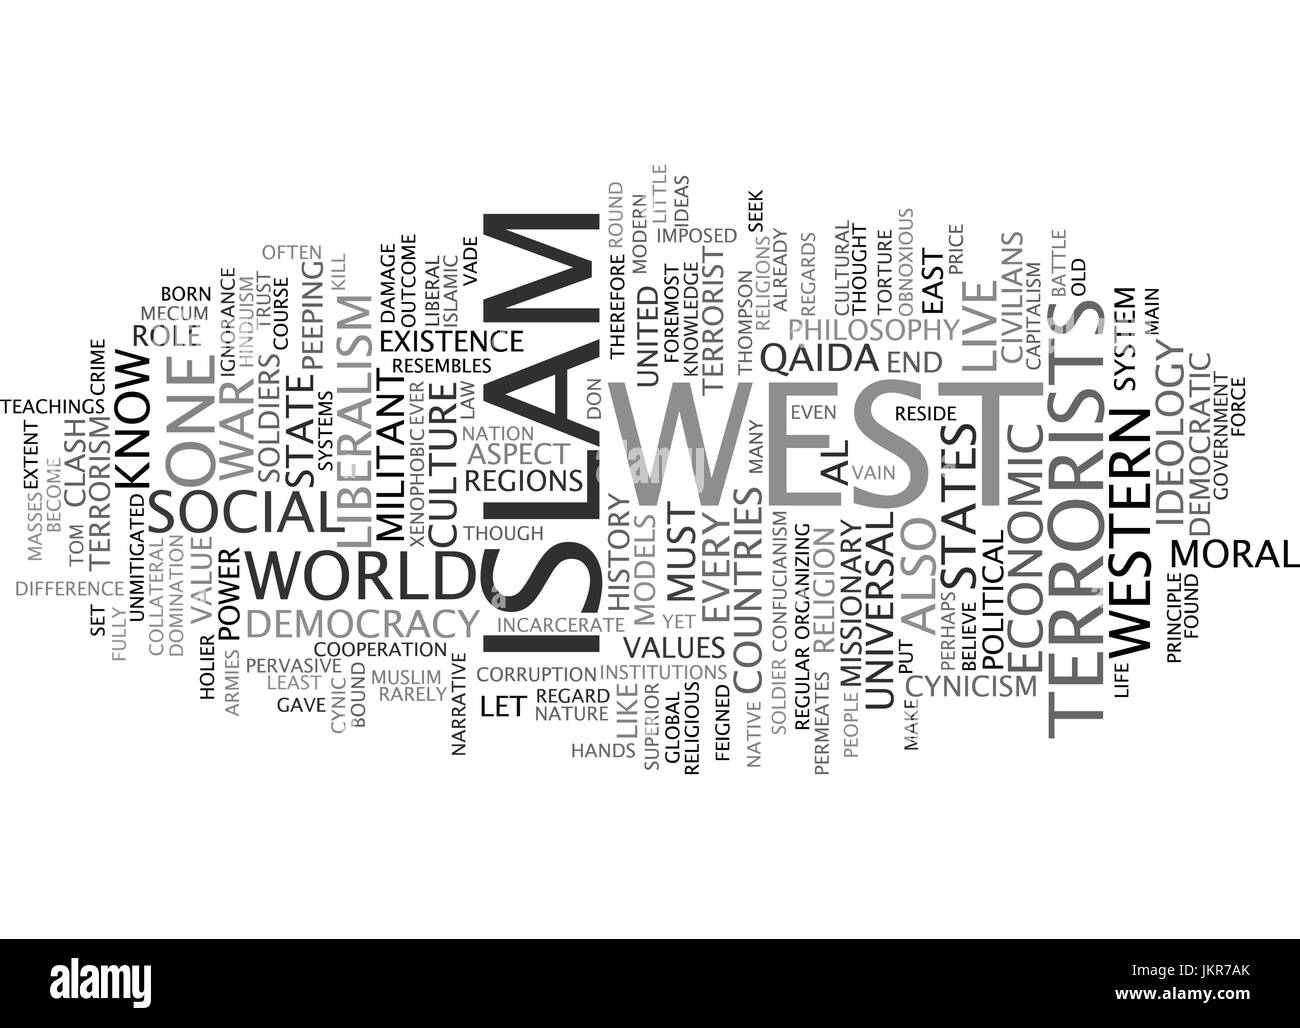 THE CLASH OF ISLAM AND LIBERALISM Text Background Word Cloud Concept - Stock Image